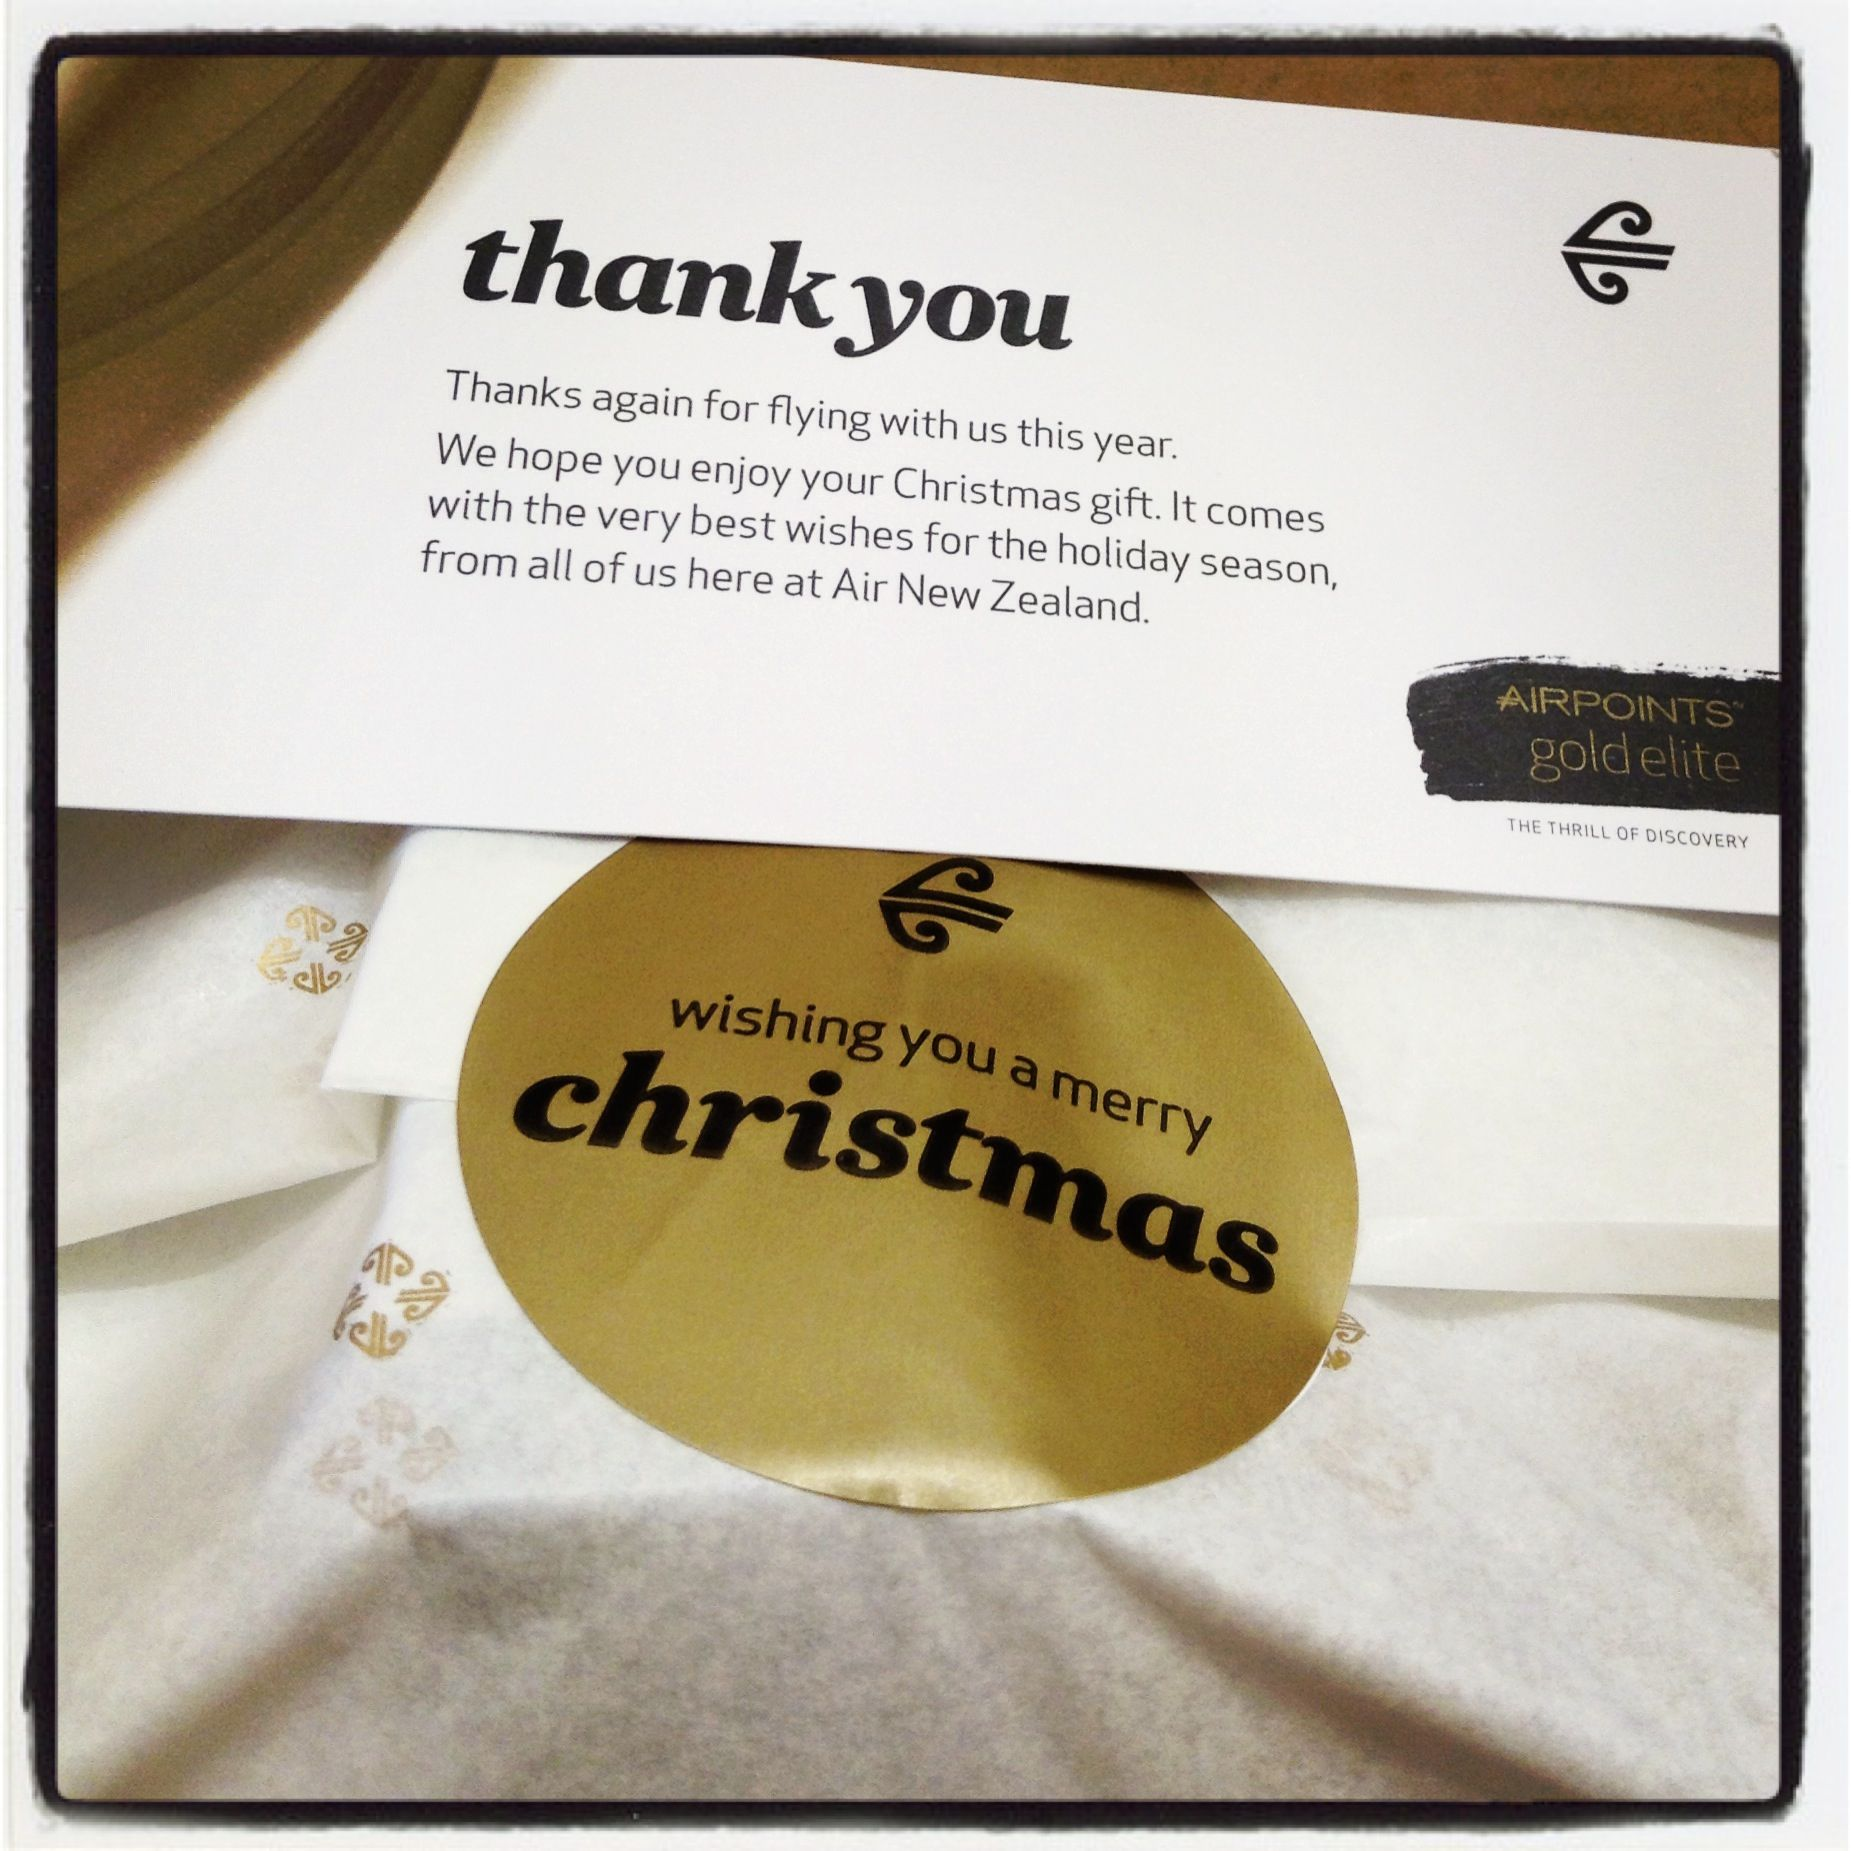 Merry Christmas From Air New Zealand Thanks For The Christmas Gift Christmas Gifts Merry Christmas Holiday Season